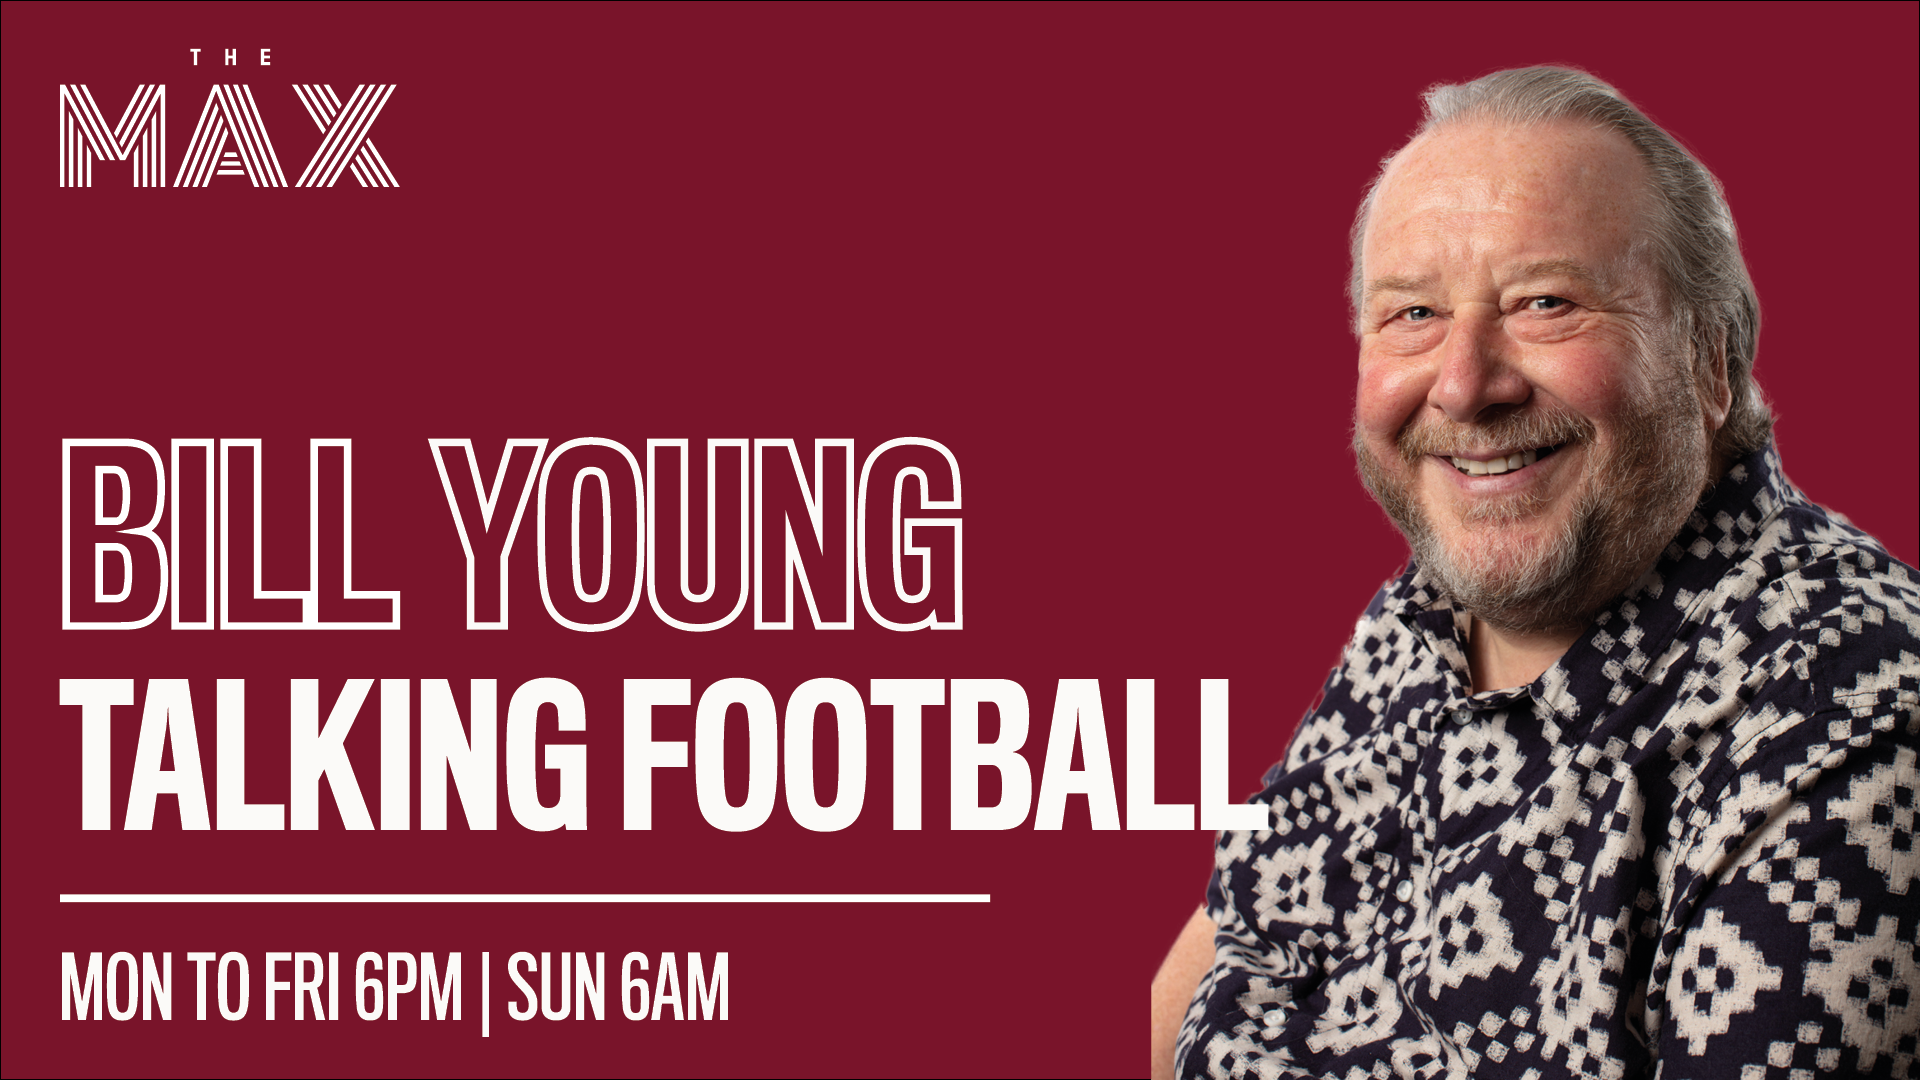 Talking Football with Bill Young - Monday 1st February